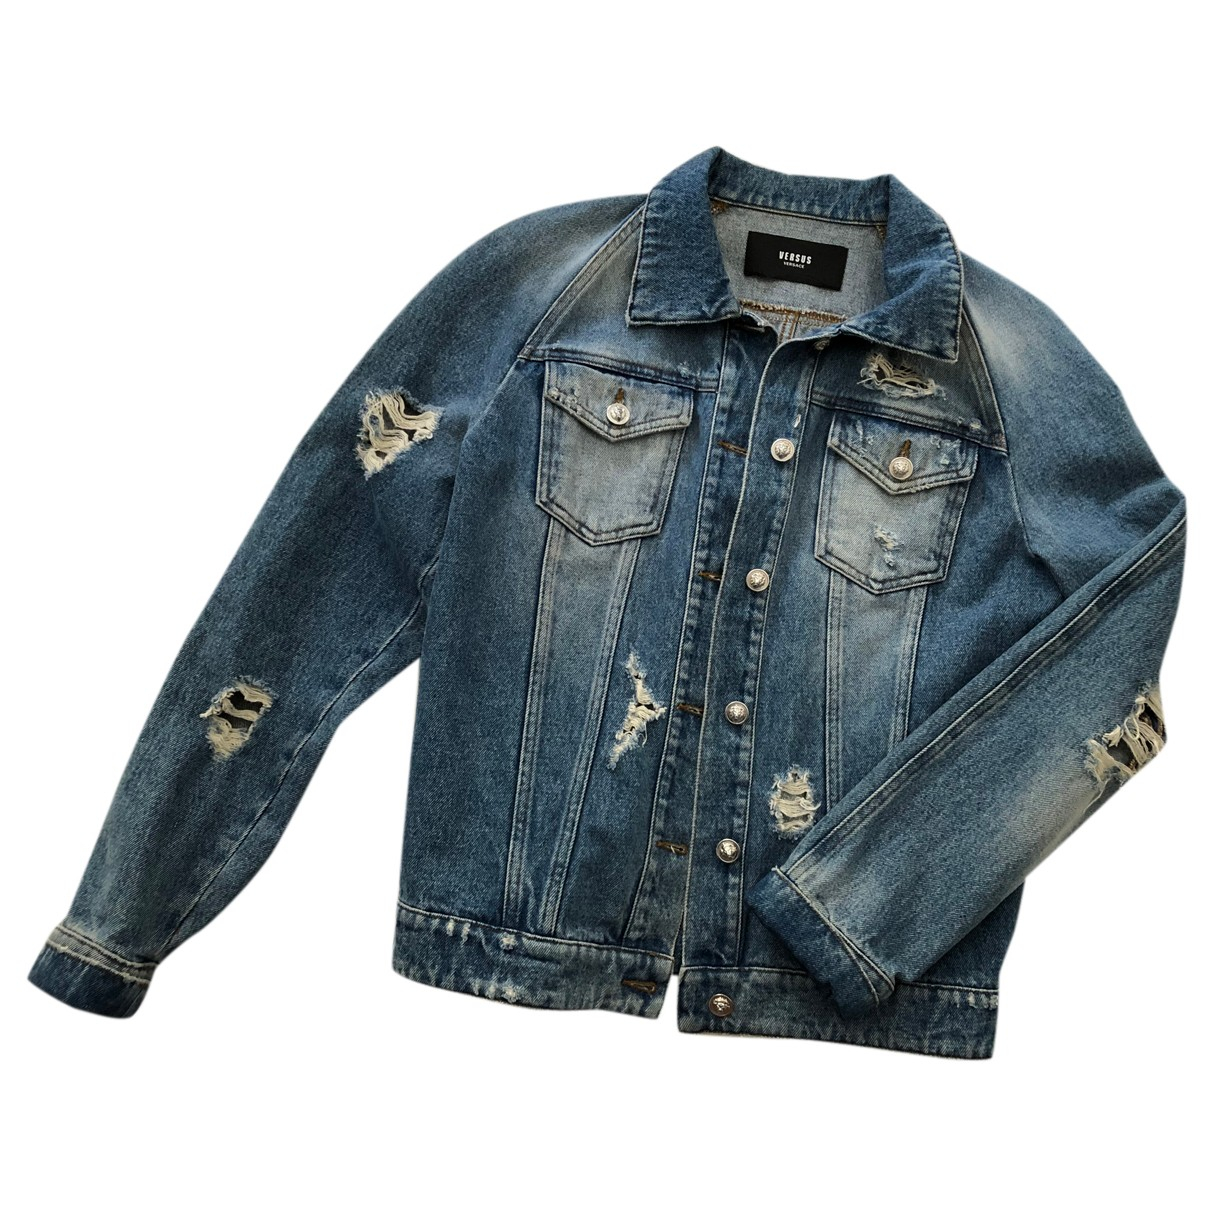 Versace \N Jacke in  Blau Denim - Jeans